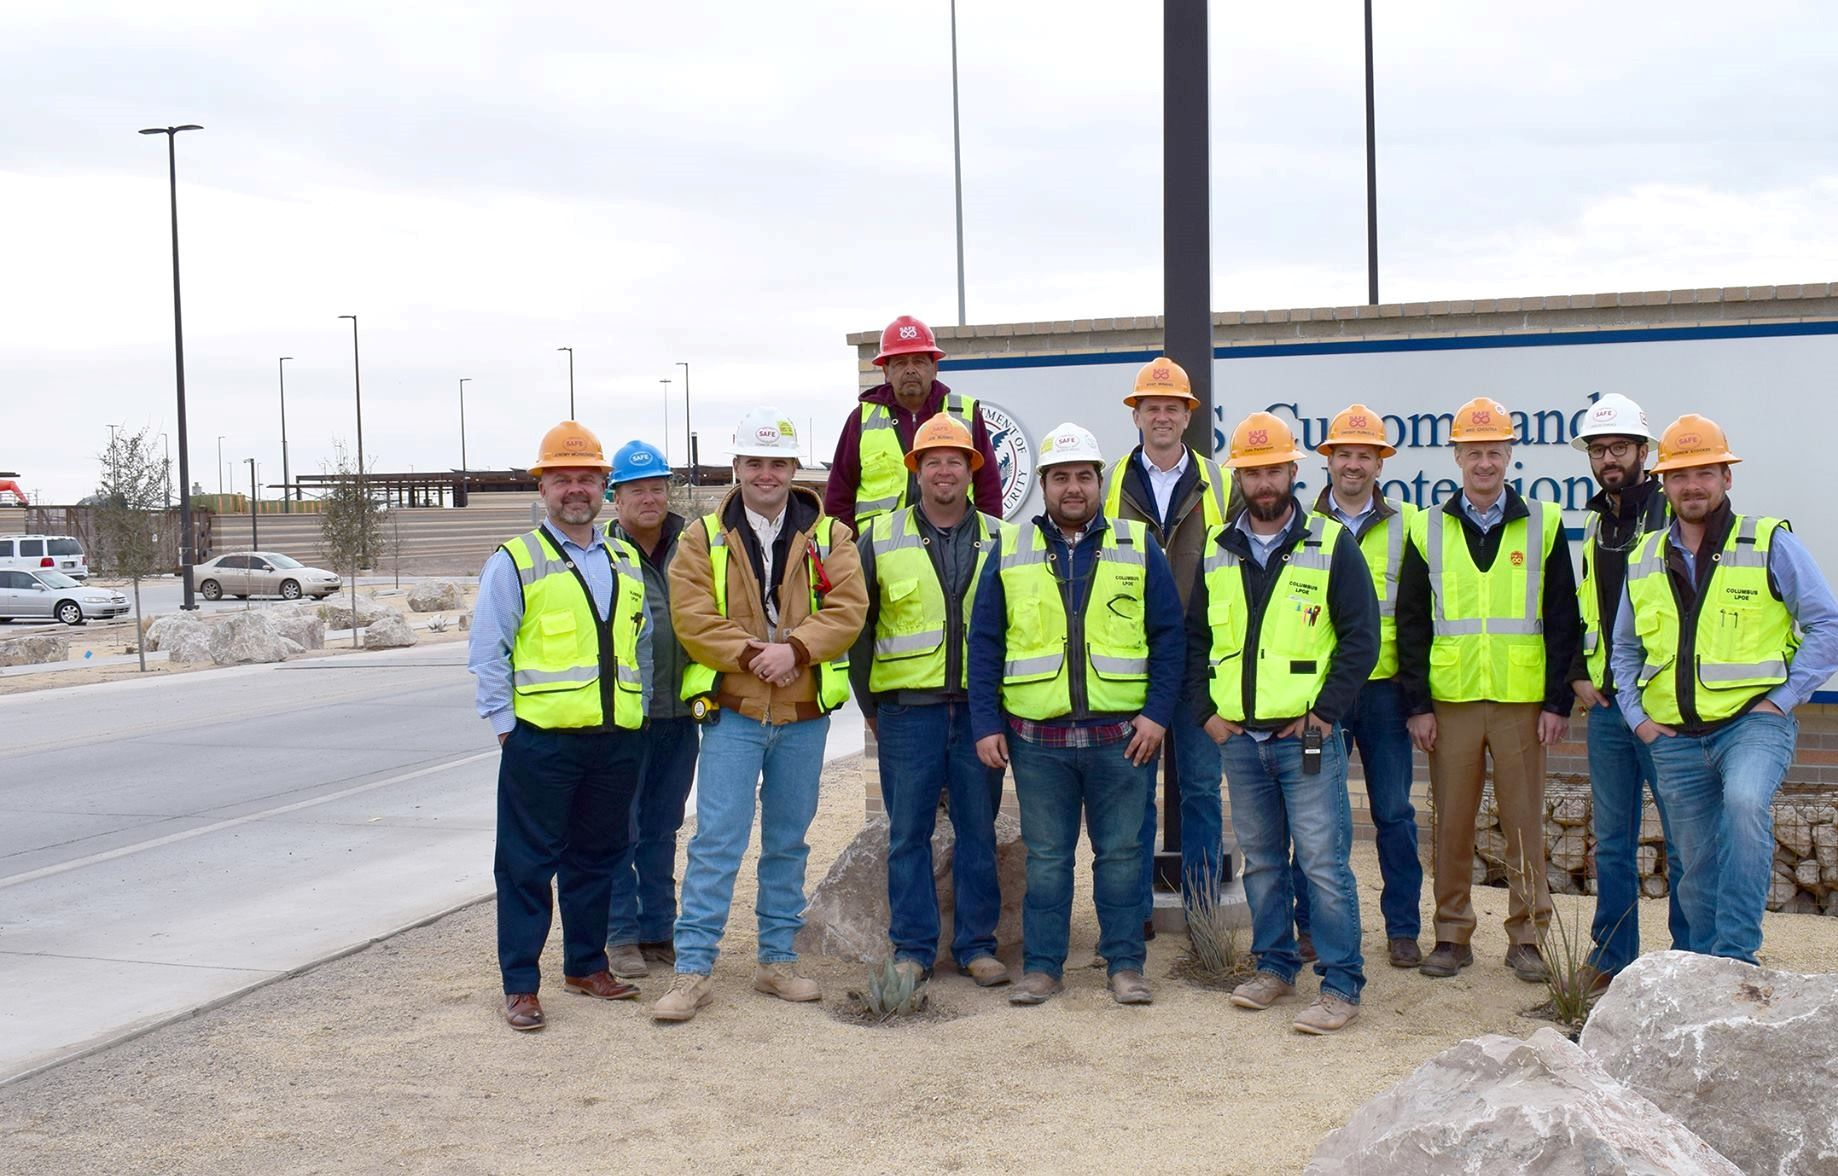 Hensel Phelps construction team at USCIS building